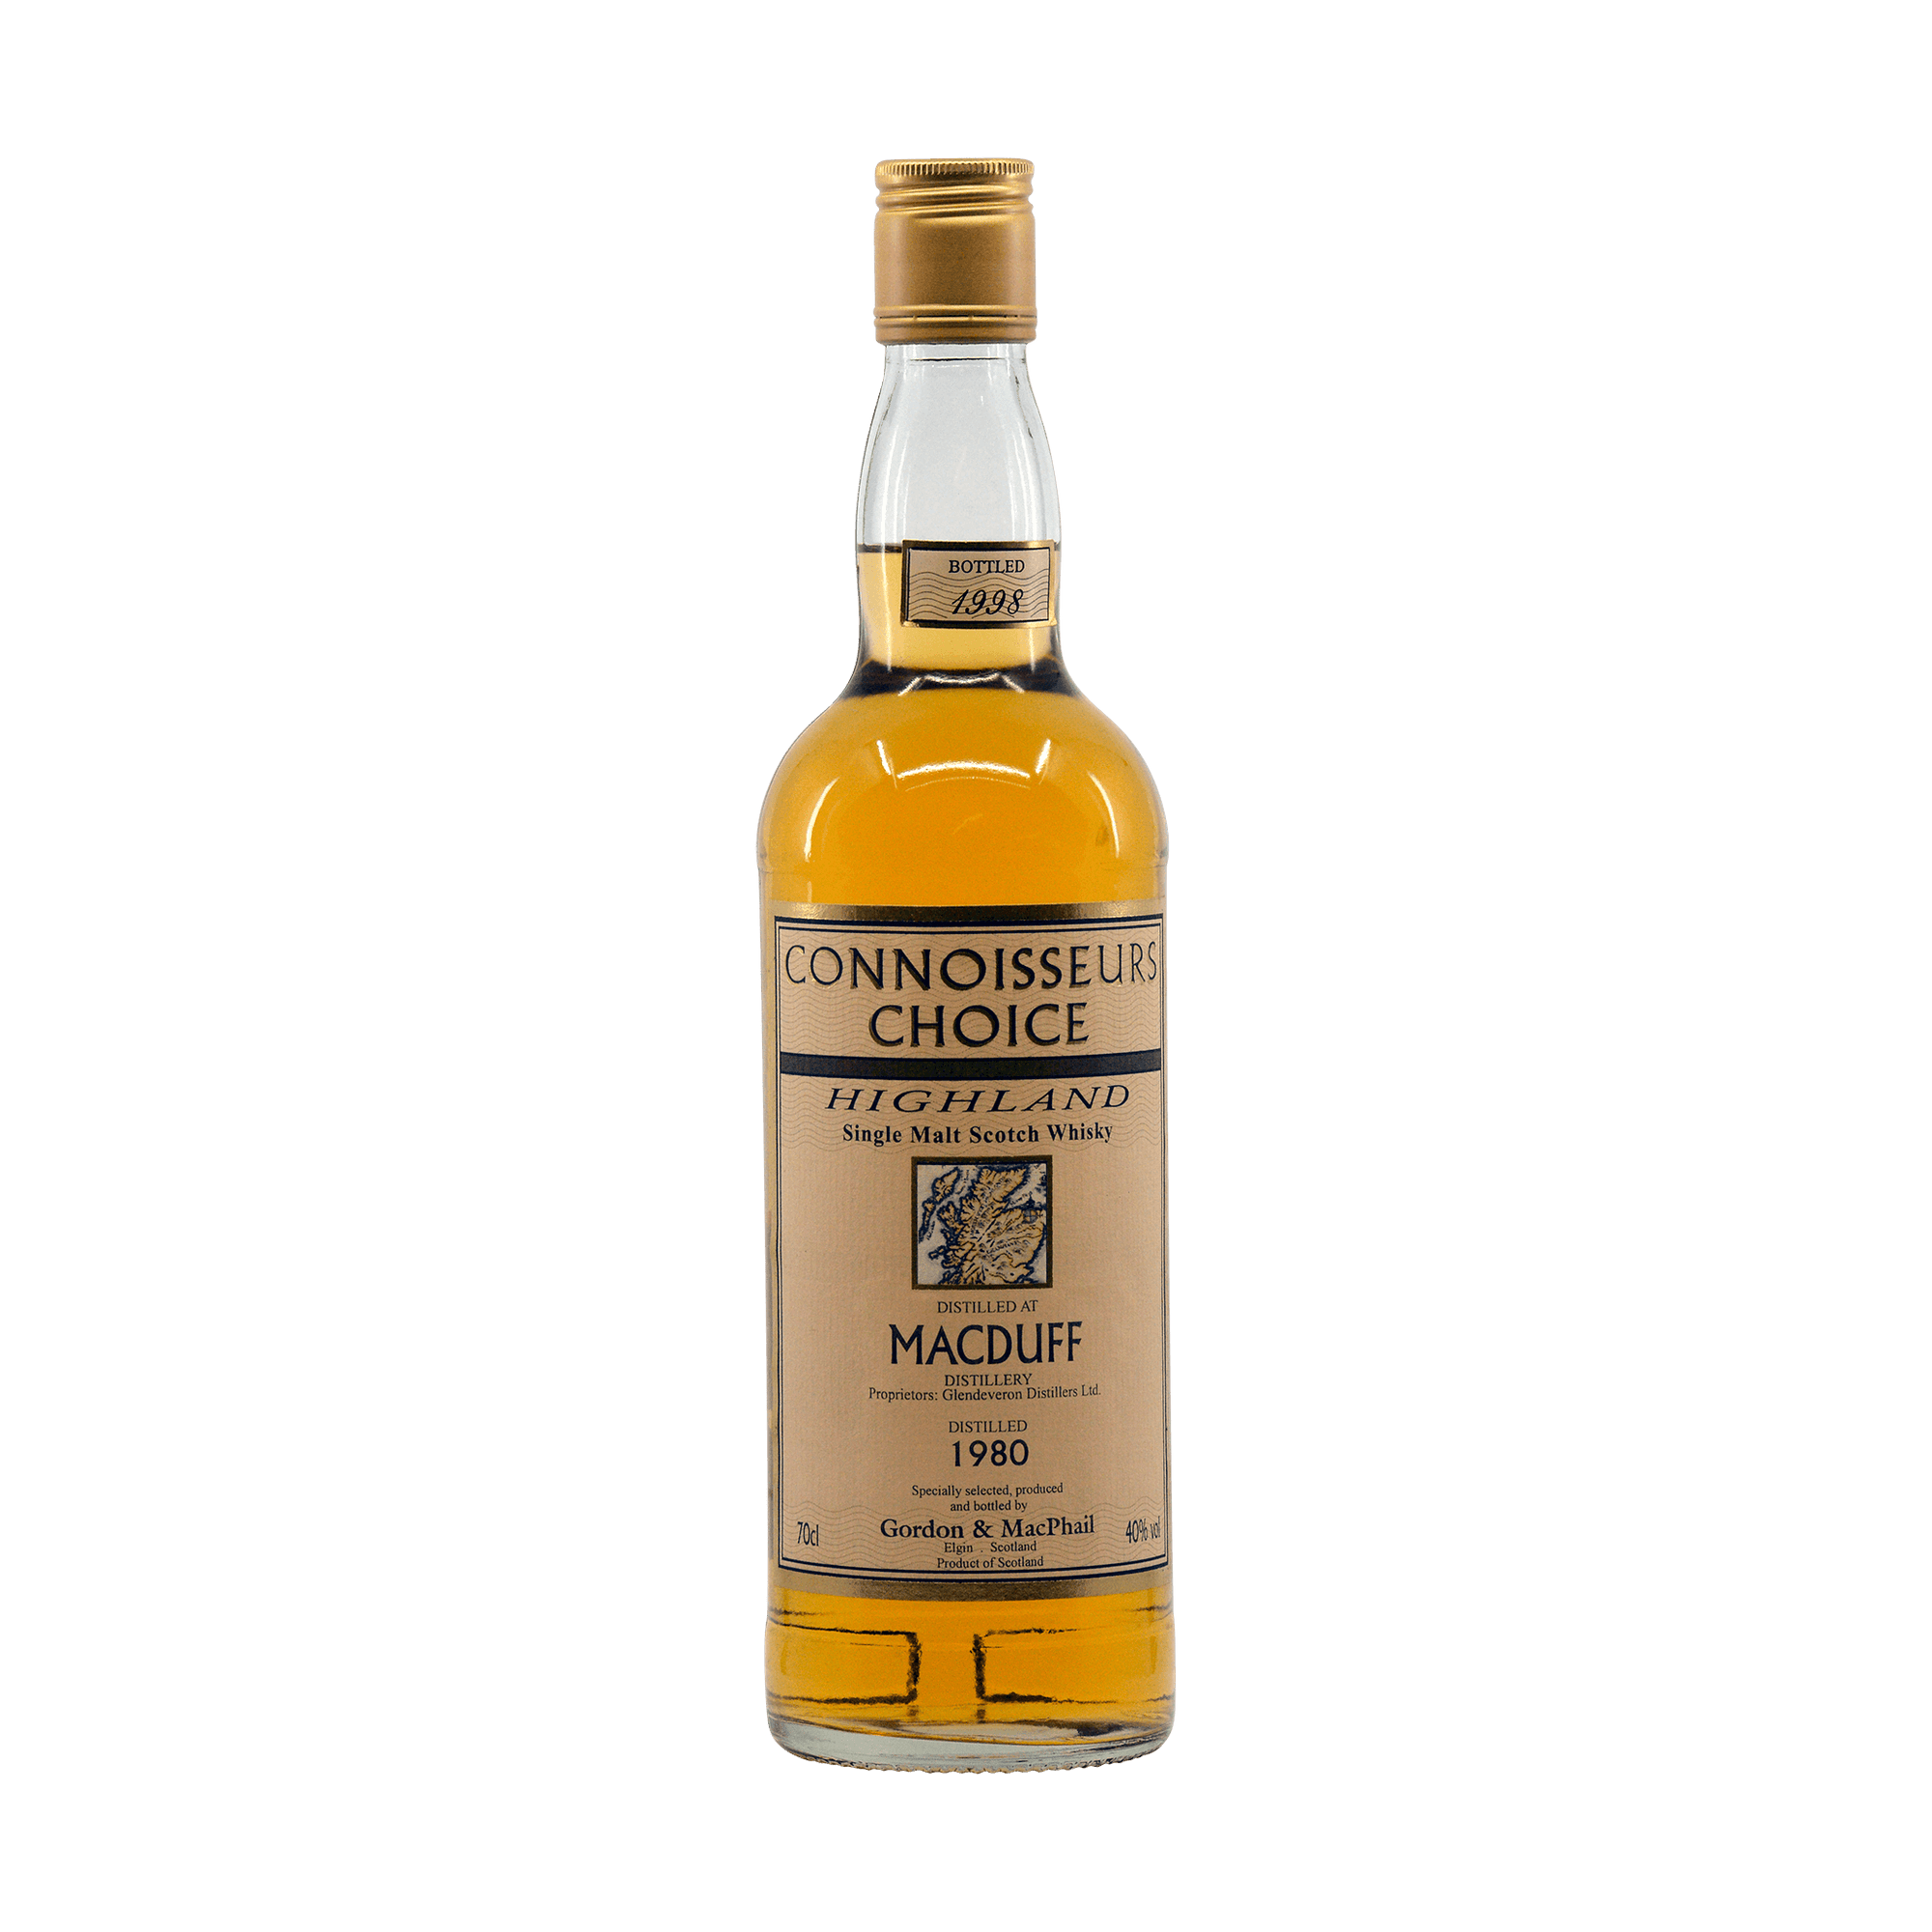 Macduff 1980 18 Year Old 'Connoisseurs Choice' Gordon & MacPhail 40.00%